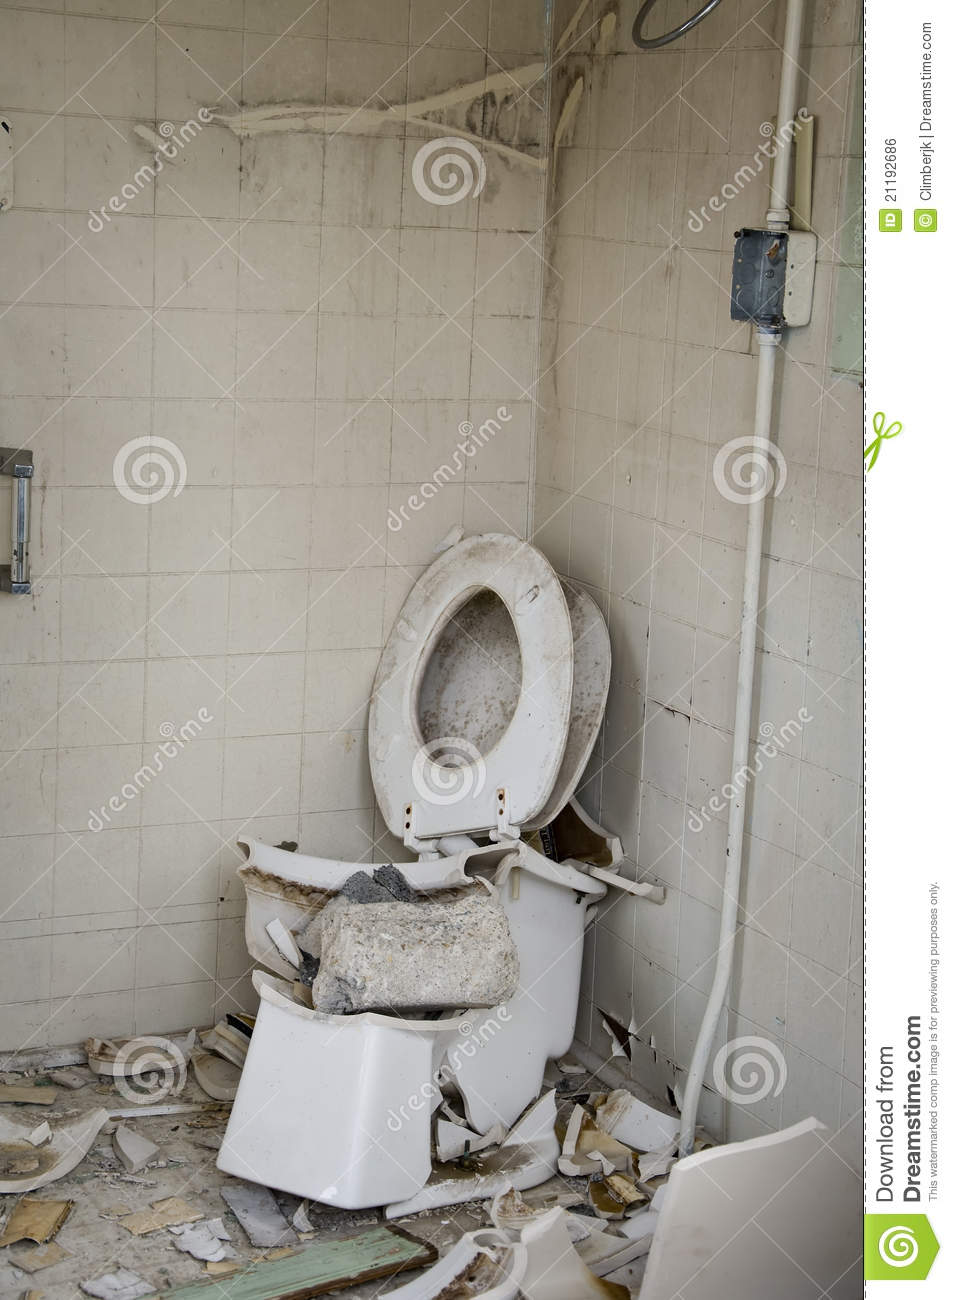 Shattered Toilet Royalty Free Stock Image Image 21192686